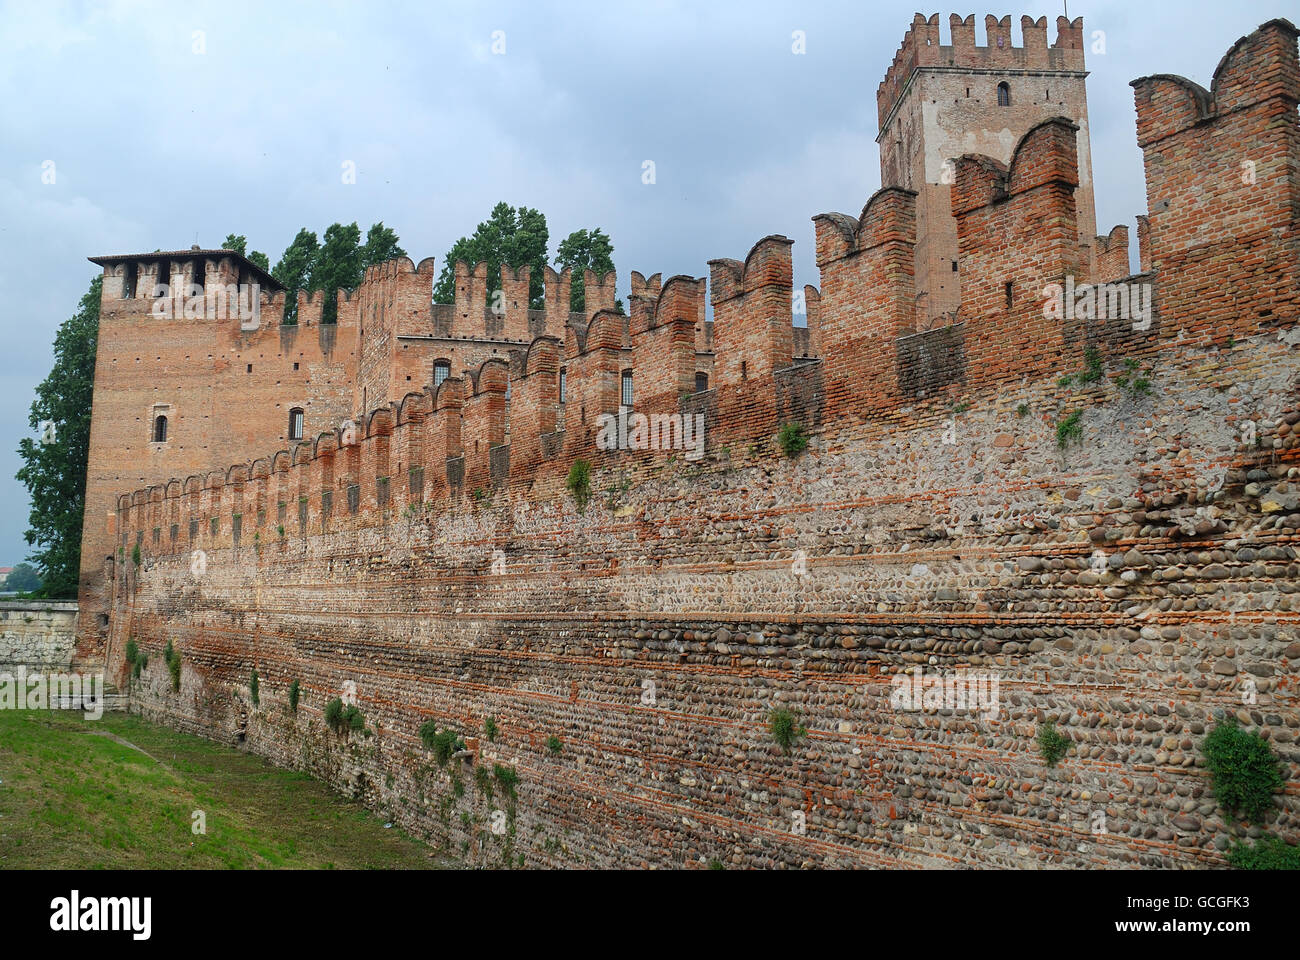 verona, italy. castelvecchio castle. it is the most important